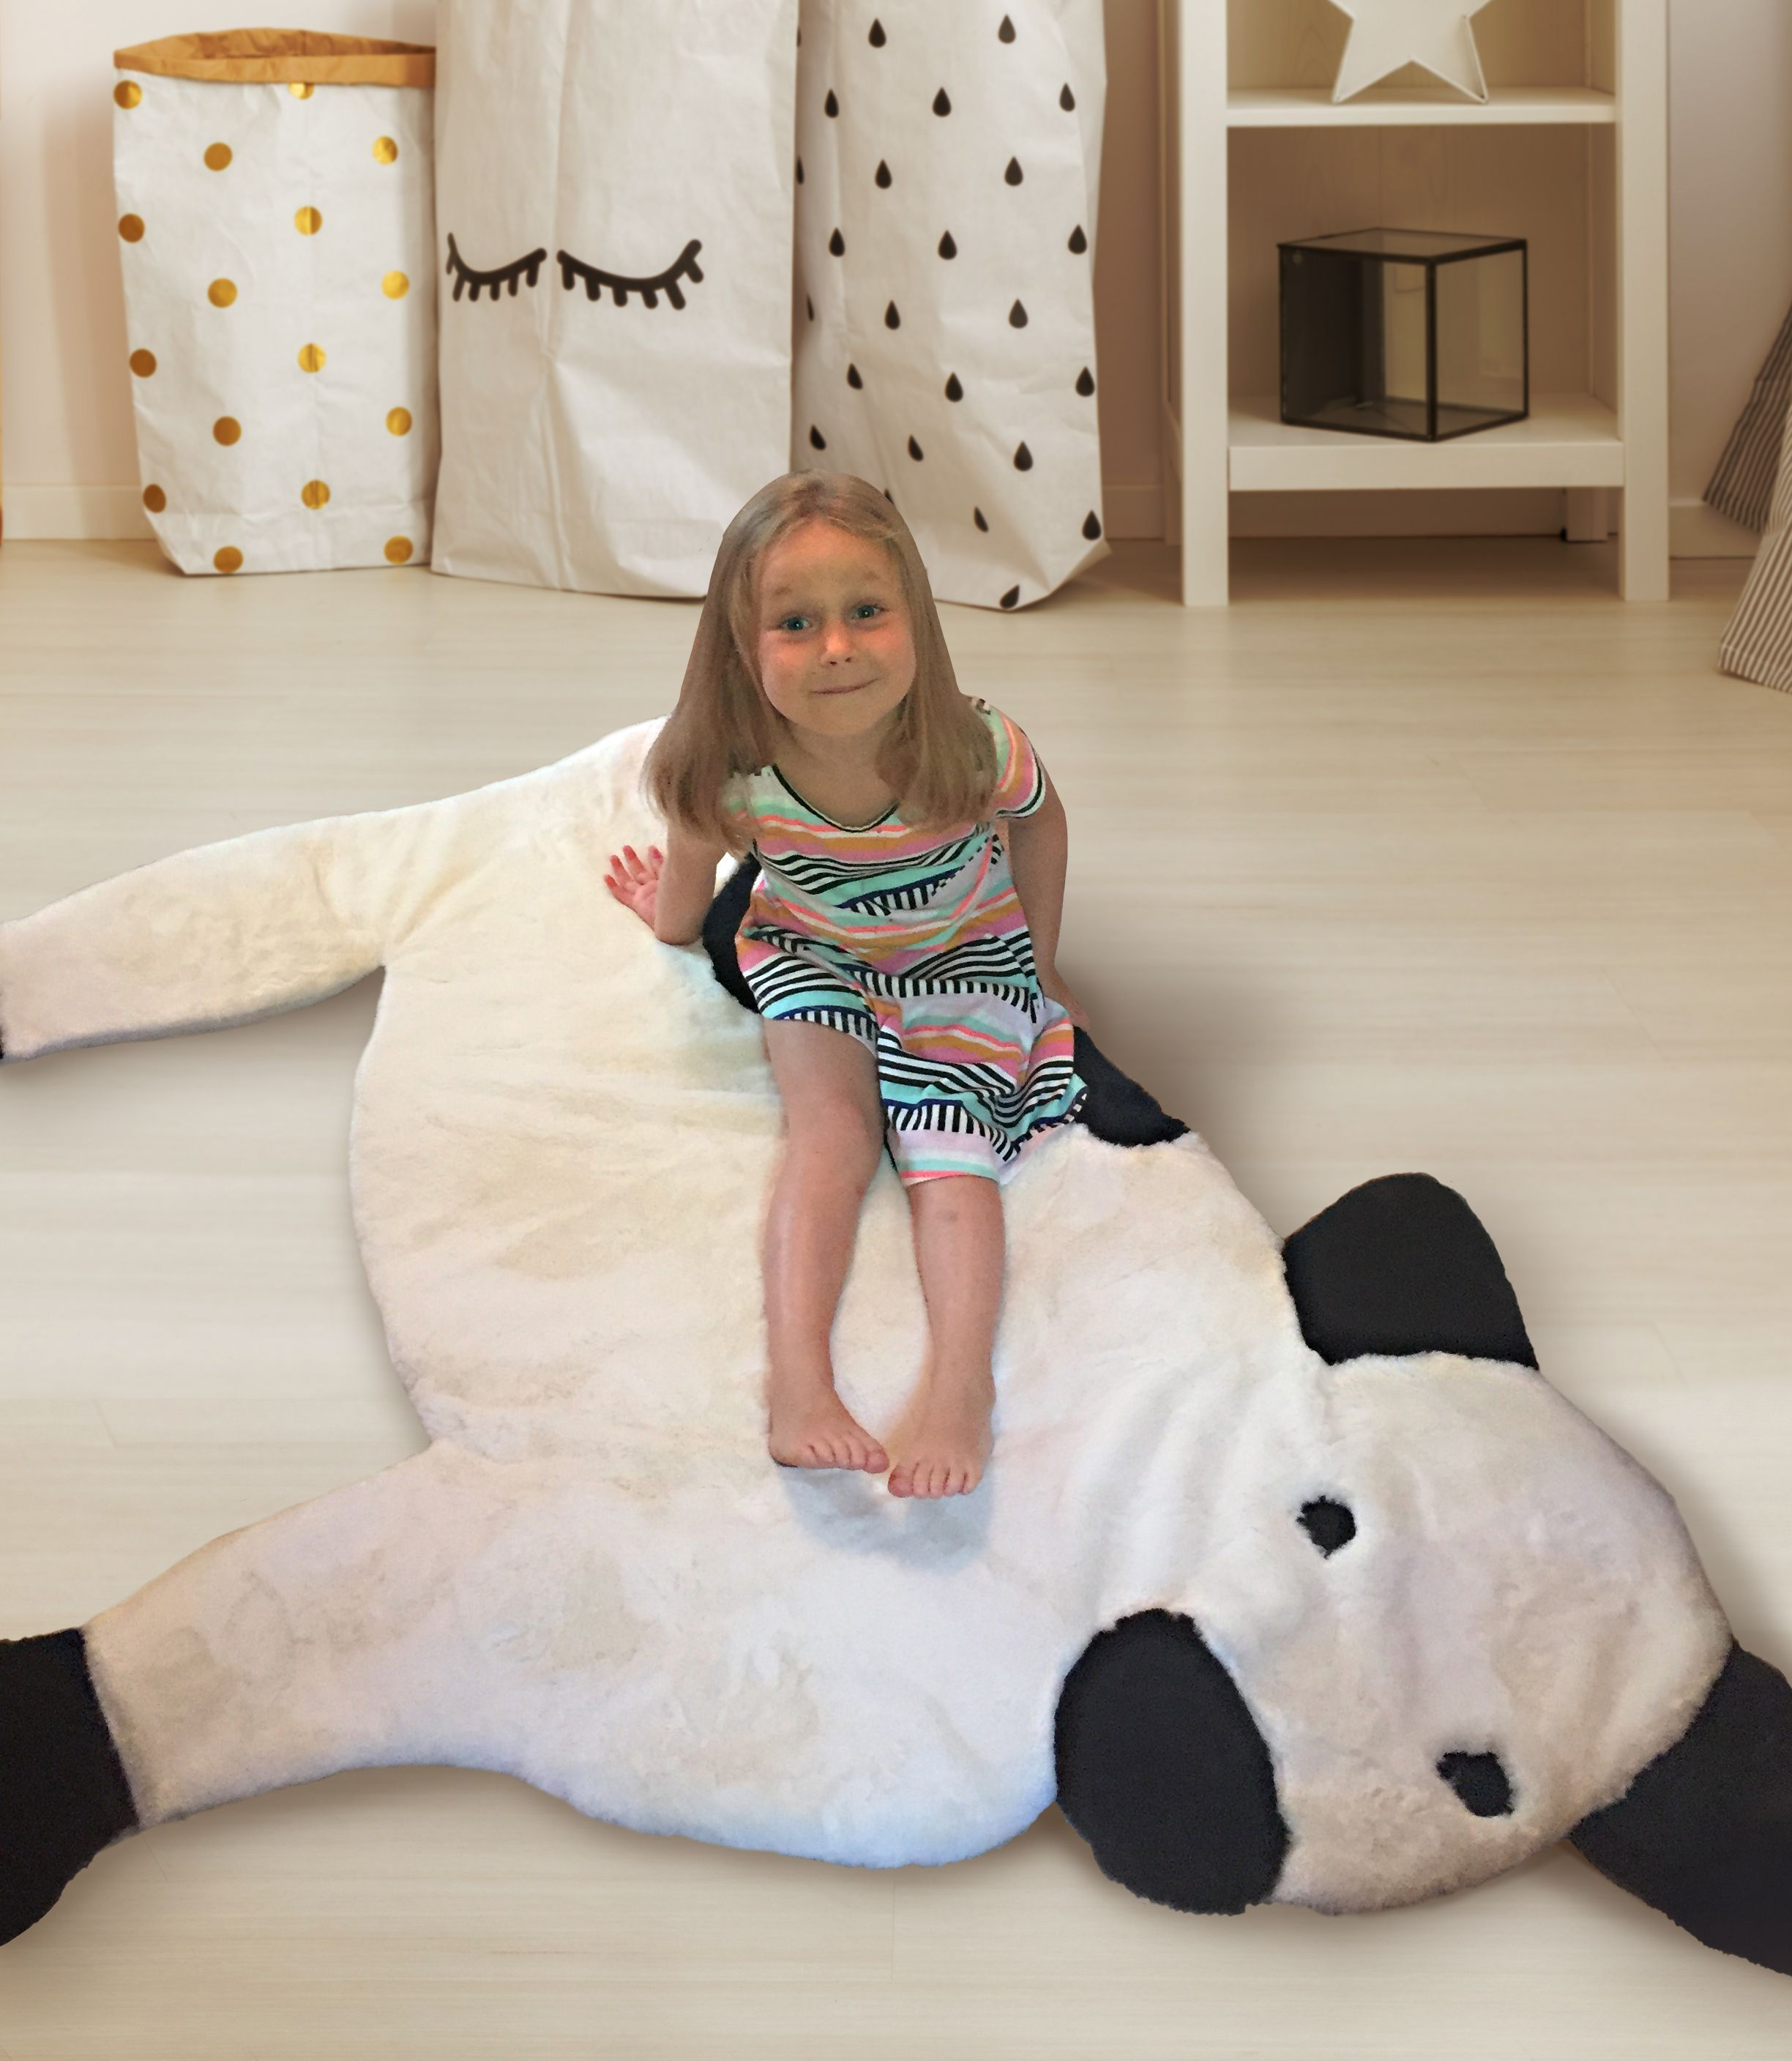 Animal Shape Faux Fur Rug For Nursery Or Kids Room 3x5 4x6 Warm Fuzzies Rugzies Original Collection Cow Additional 15 Off On Your First Order With